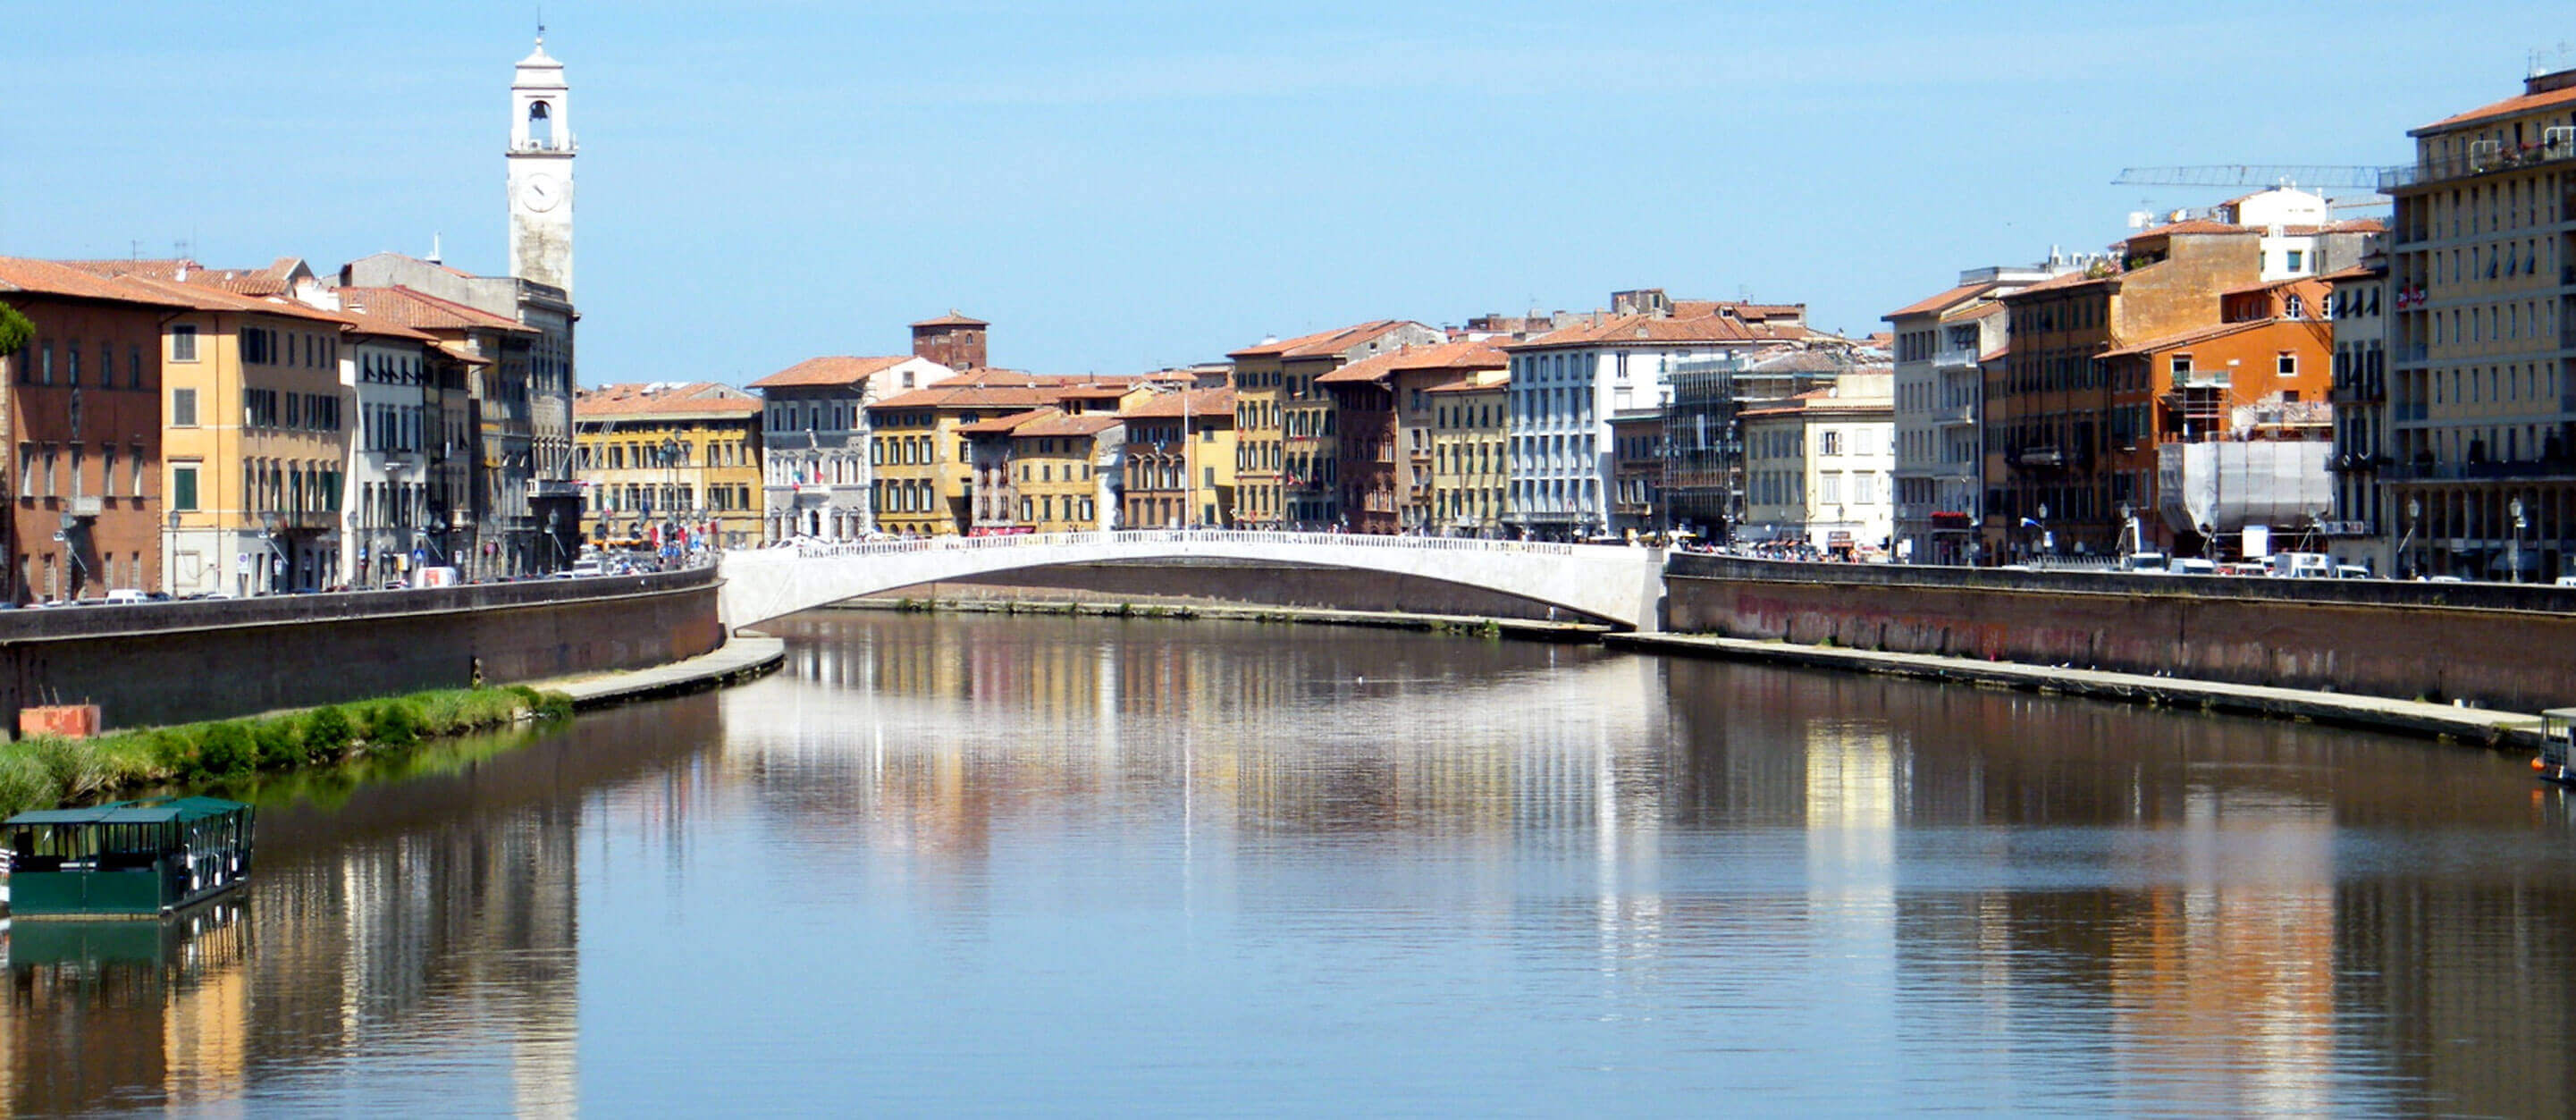 10 things to see in pisa